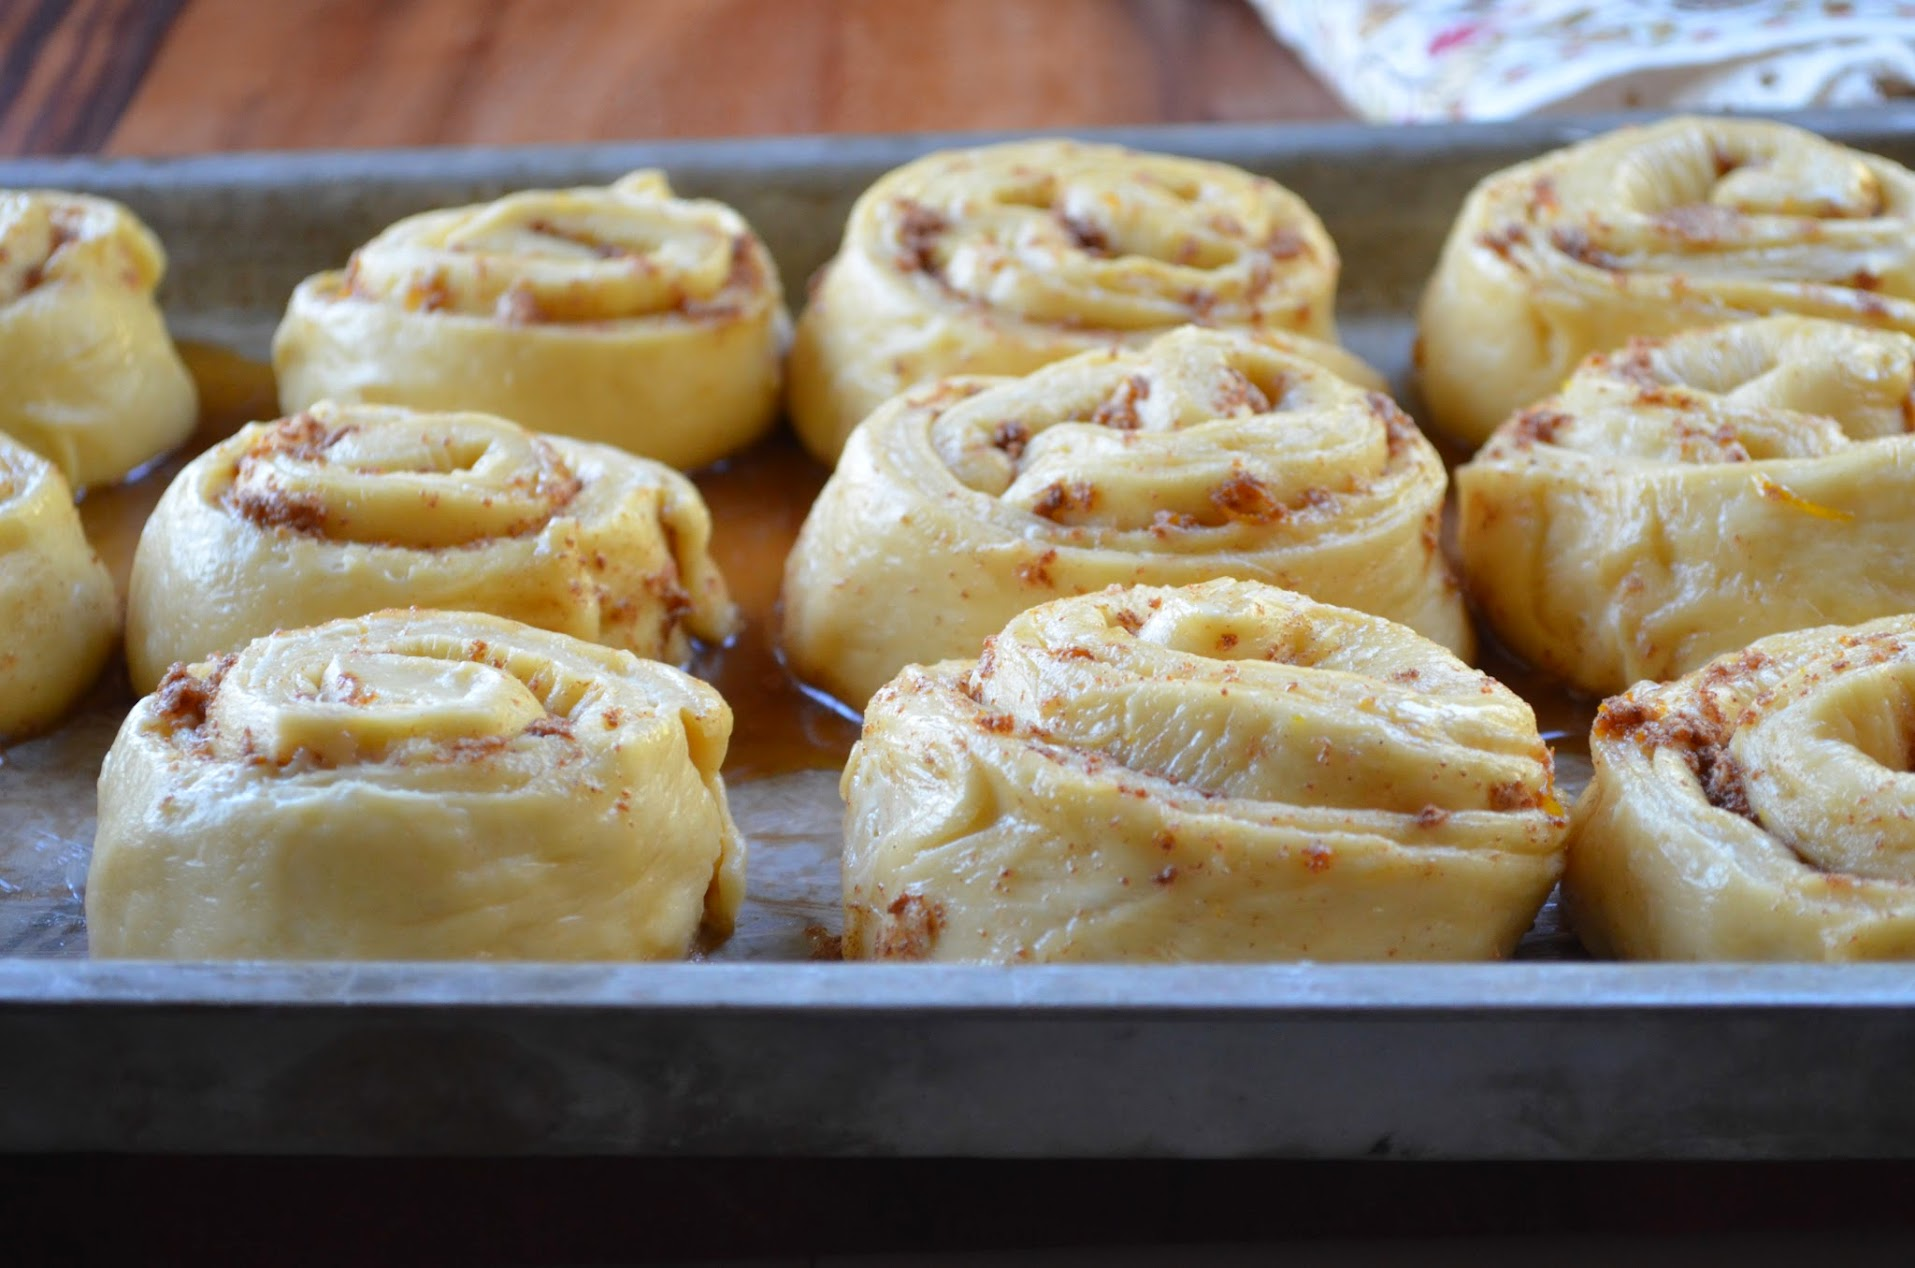 Citrus-Orange-Cinnamon-Rolls-Cut-Rolls.jpg